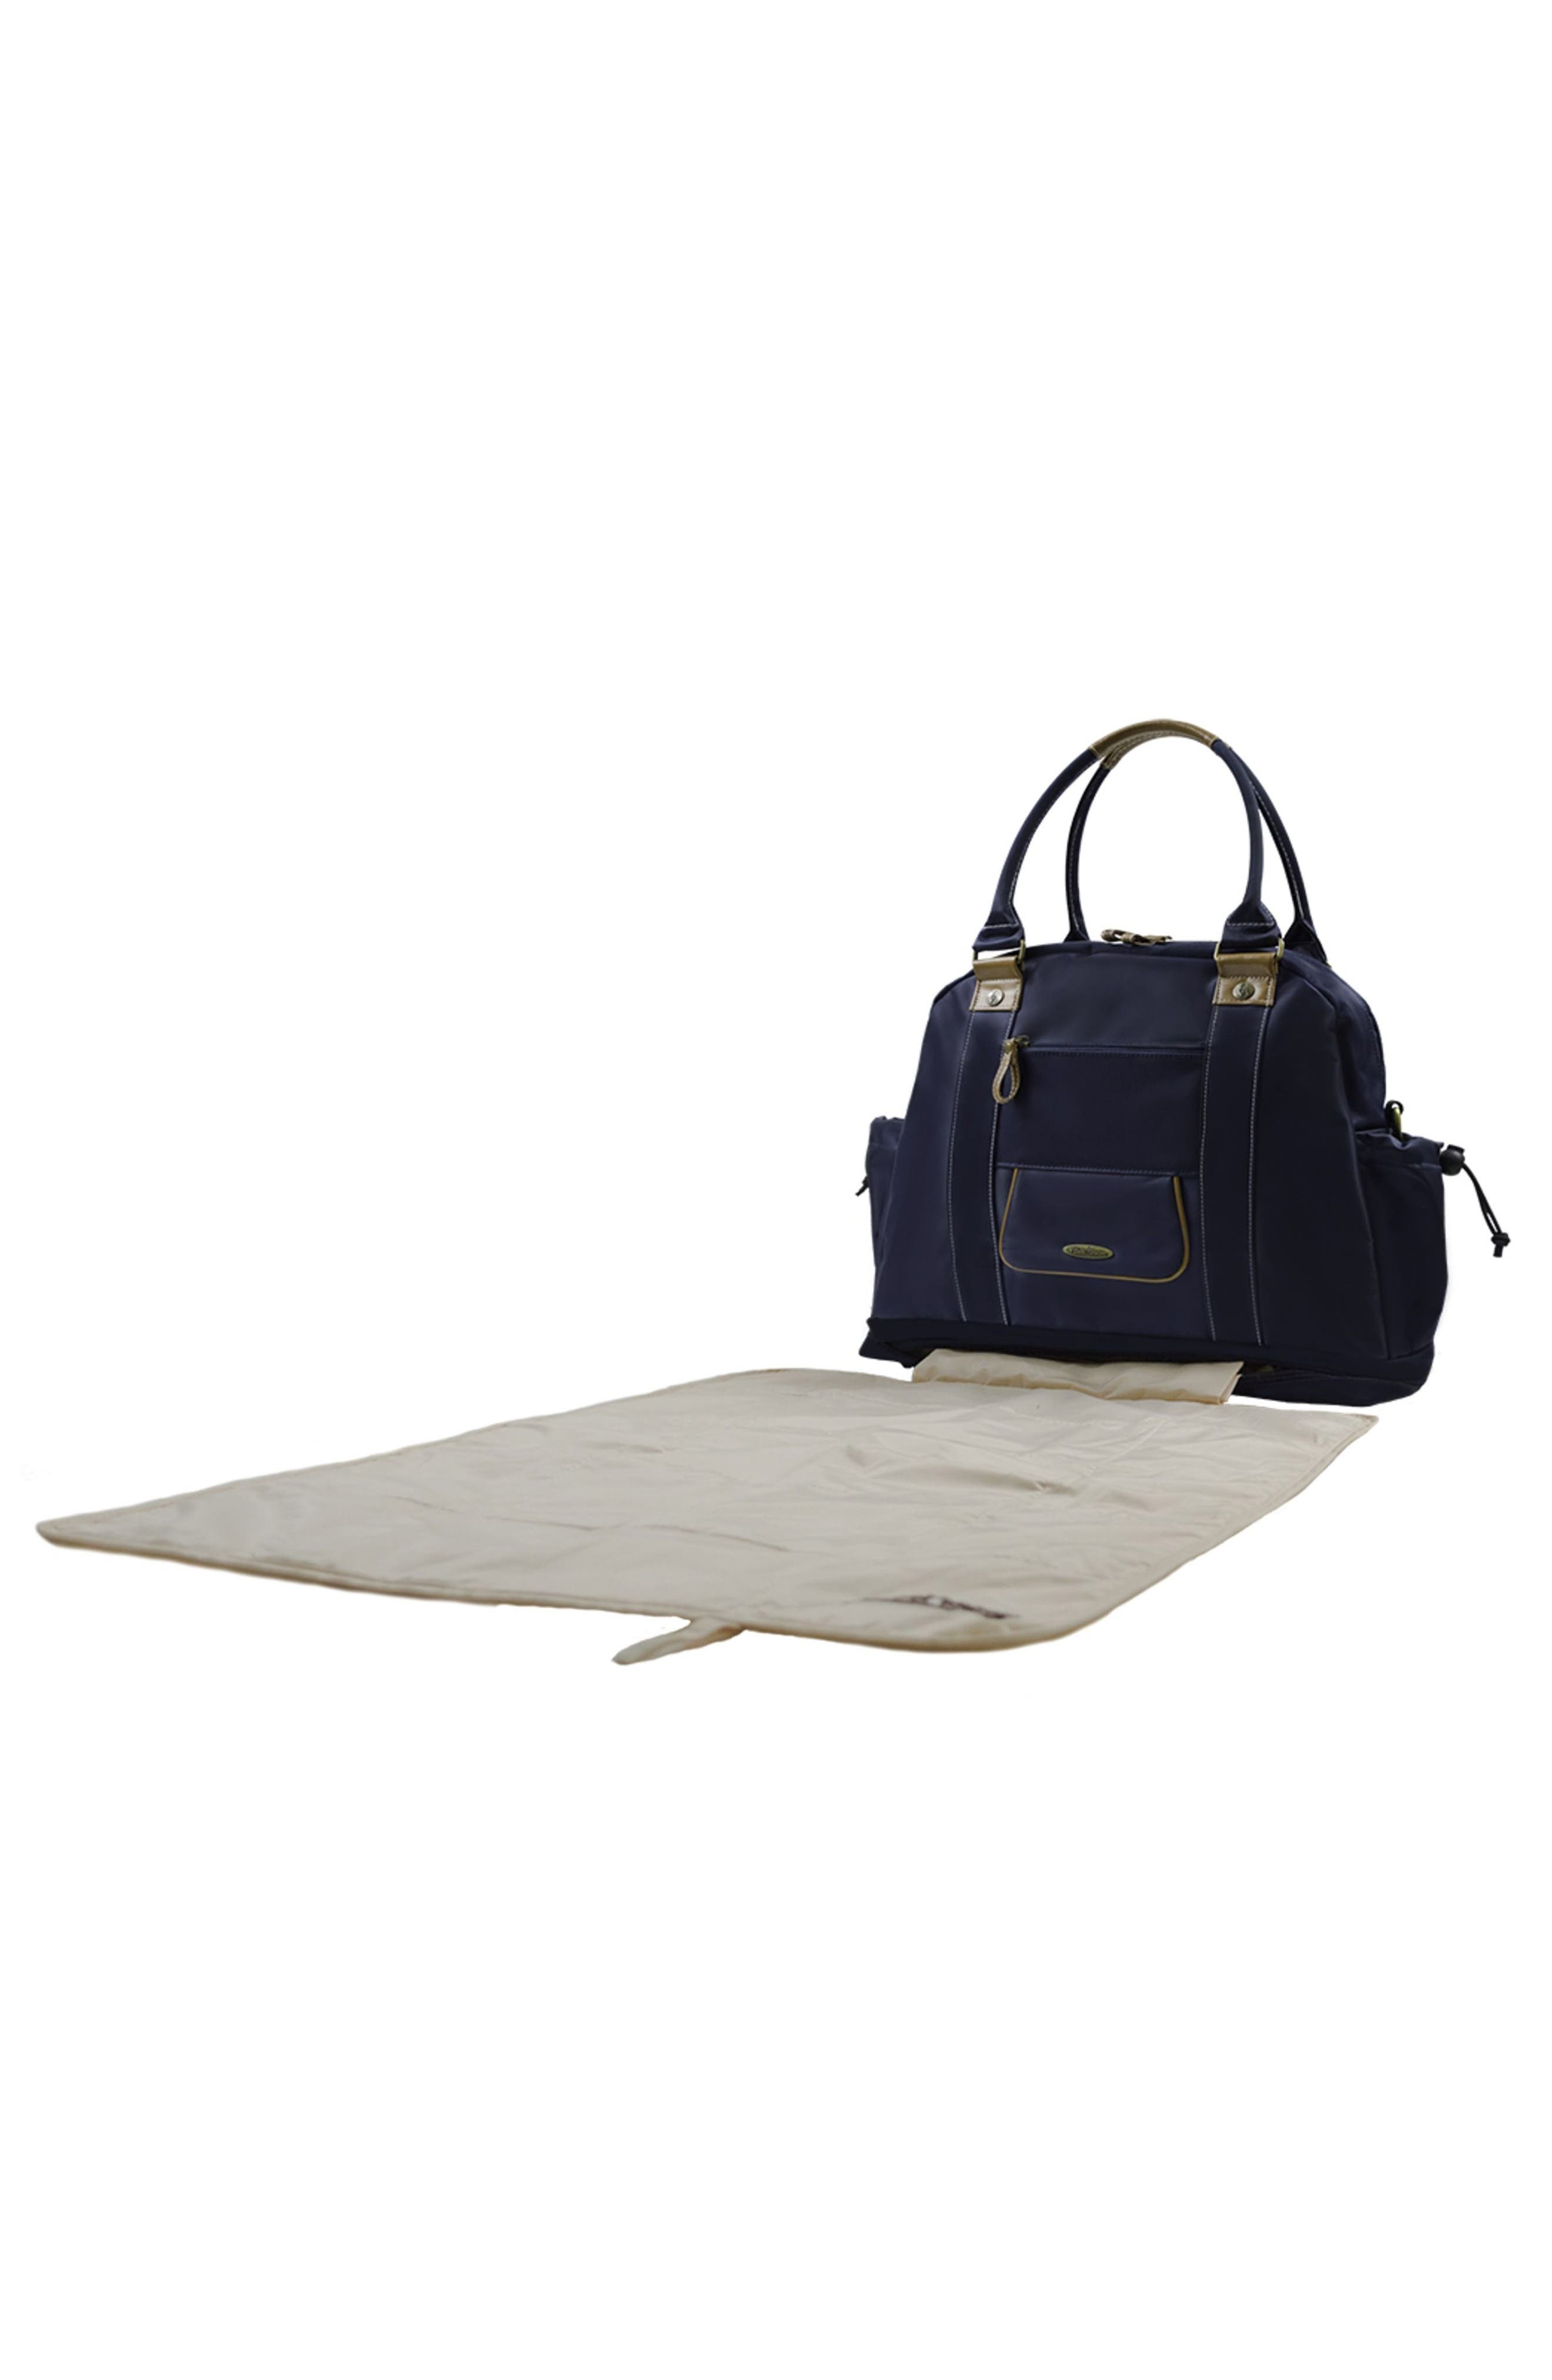 Sail Away Satchel Diaper bag,                             Alternate thumbnail 4, color,                             Natuical Navy